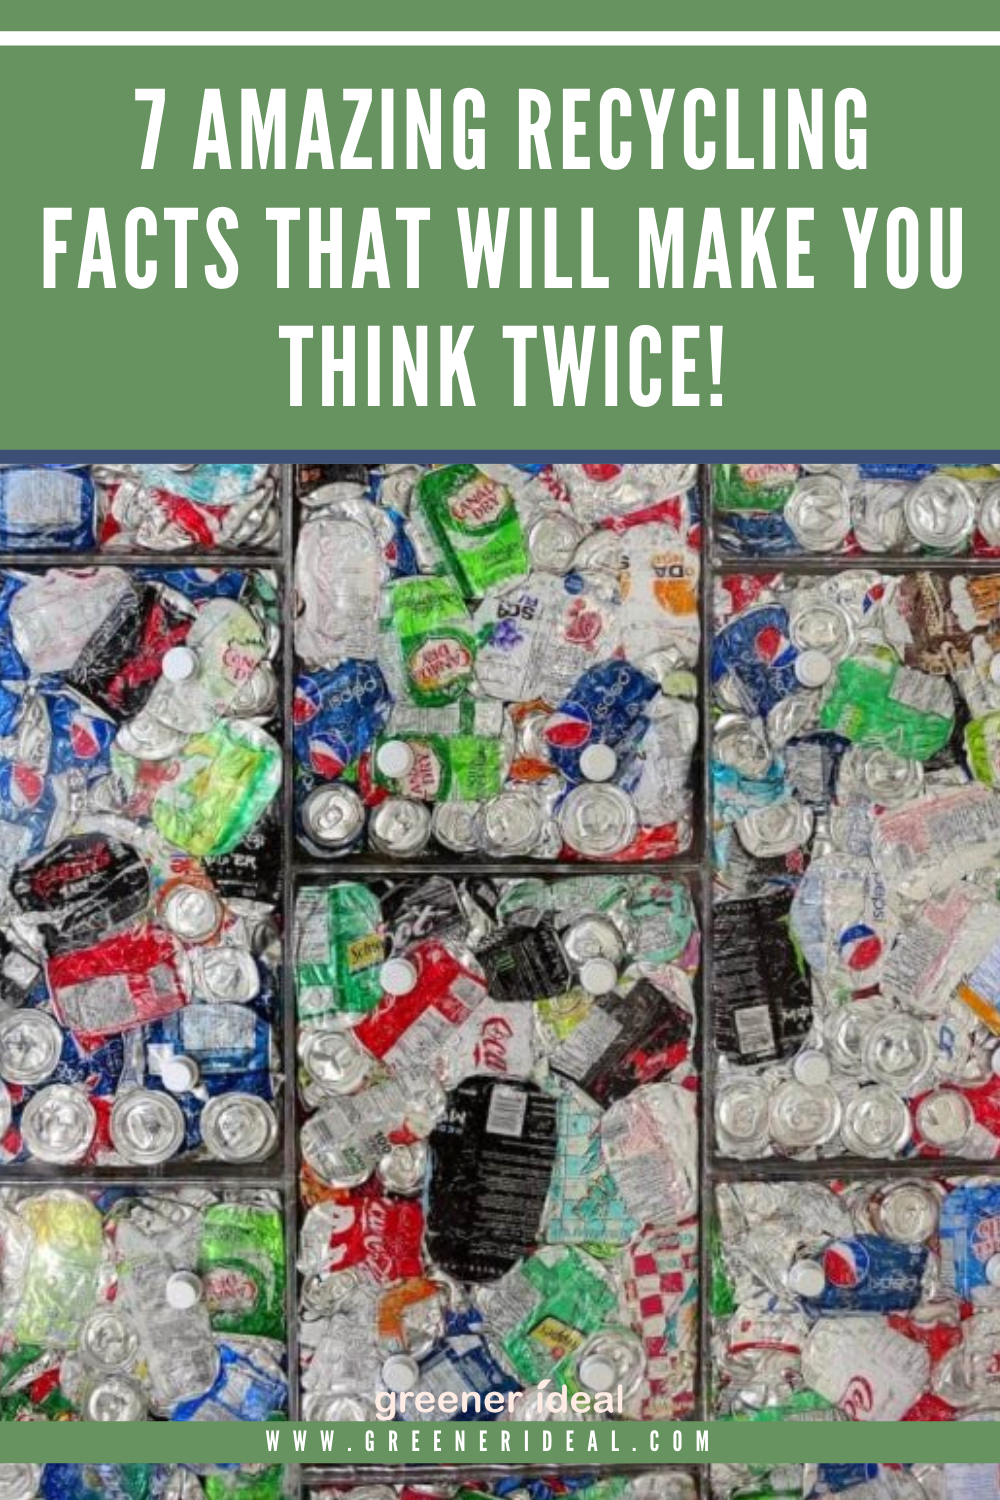 The more you know about recycling, the more you will be motivated to do it. Not only does recycling keep waste from overcrowded landfills, but it also provides raw materials to create new products. Check out these 7 Amazing Recycling Facts That Will Make You Think Twice, and Start Recycling!  #Recycle #Recycling #environment #Ecofriendly #RecyclingTips #GoGreen #GreenLivingTips #EcofriendlyTips #Waste #WasteReduction #WasteFree #Sustainable